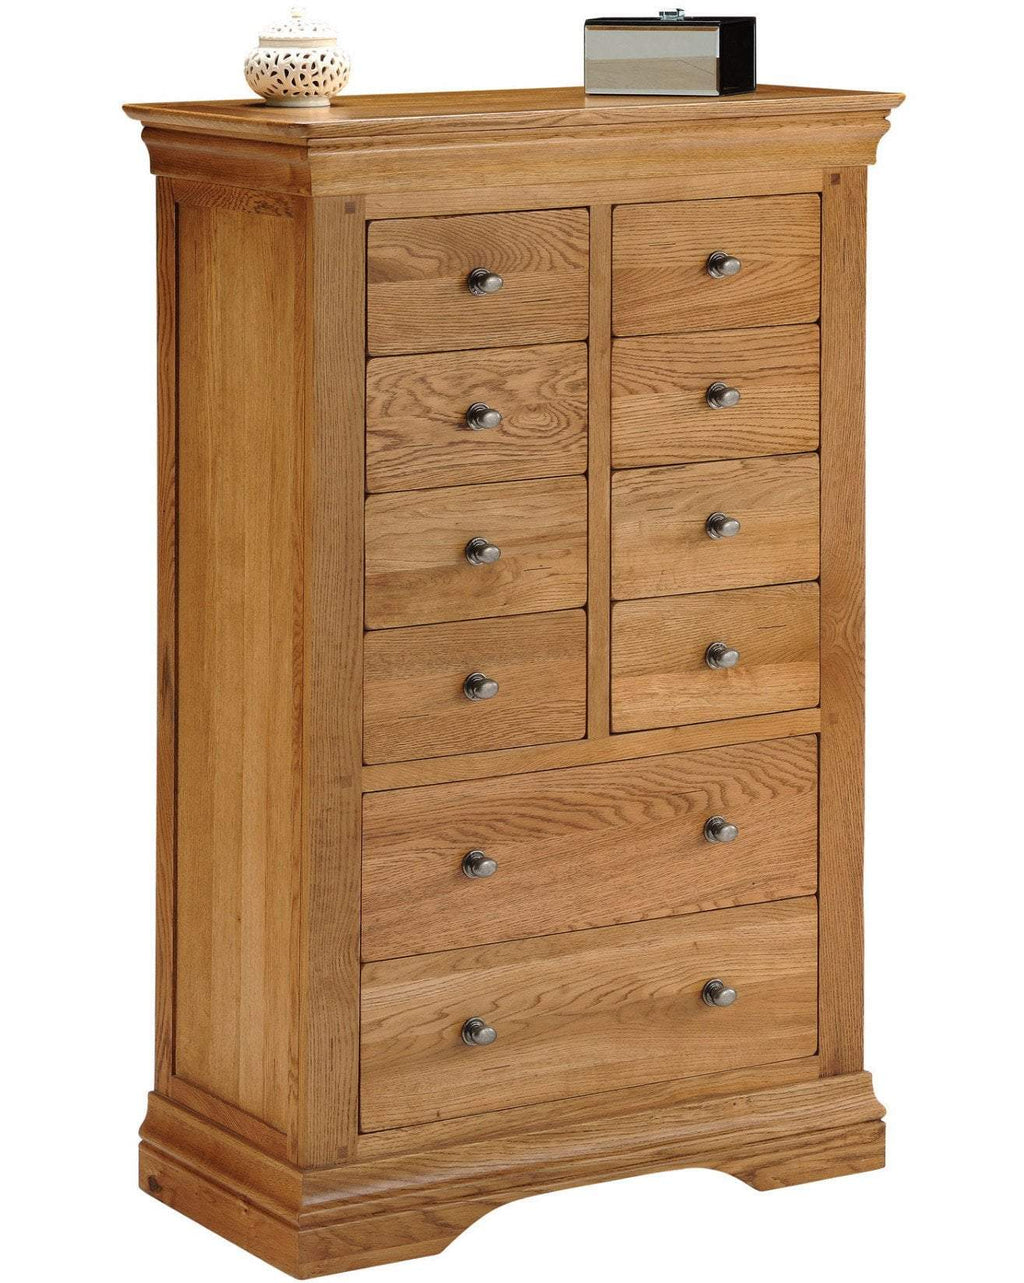 Toulouse Solid Oak 10 Drawer 8 Over 2 Louis Philippe Chest of Drawers - Oak Village